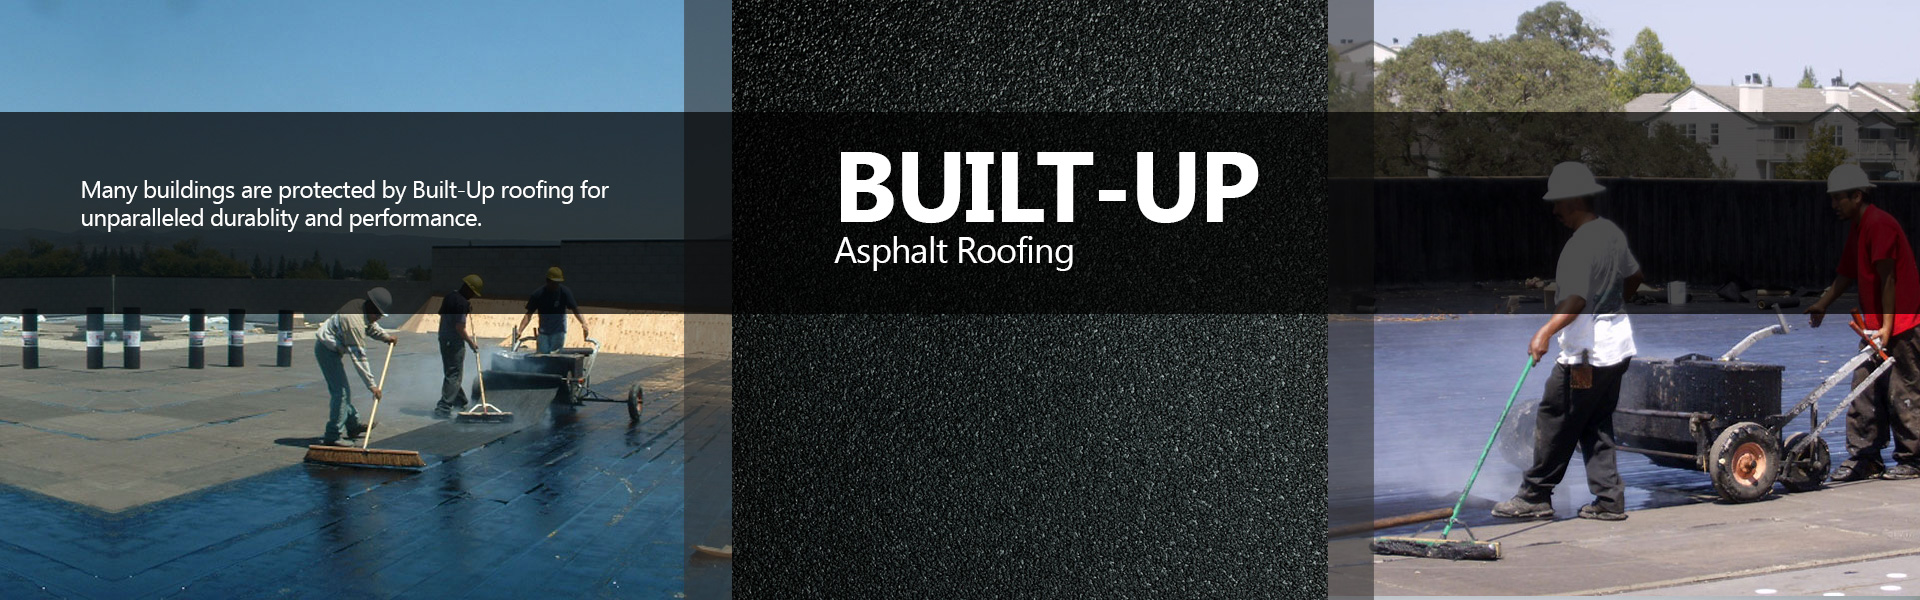 built-up-roofing-1